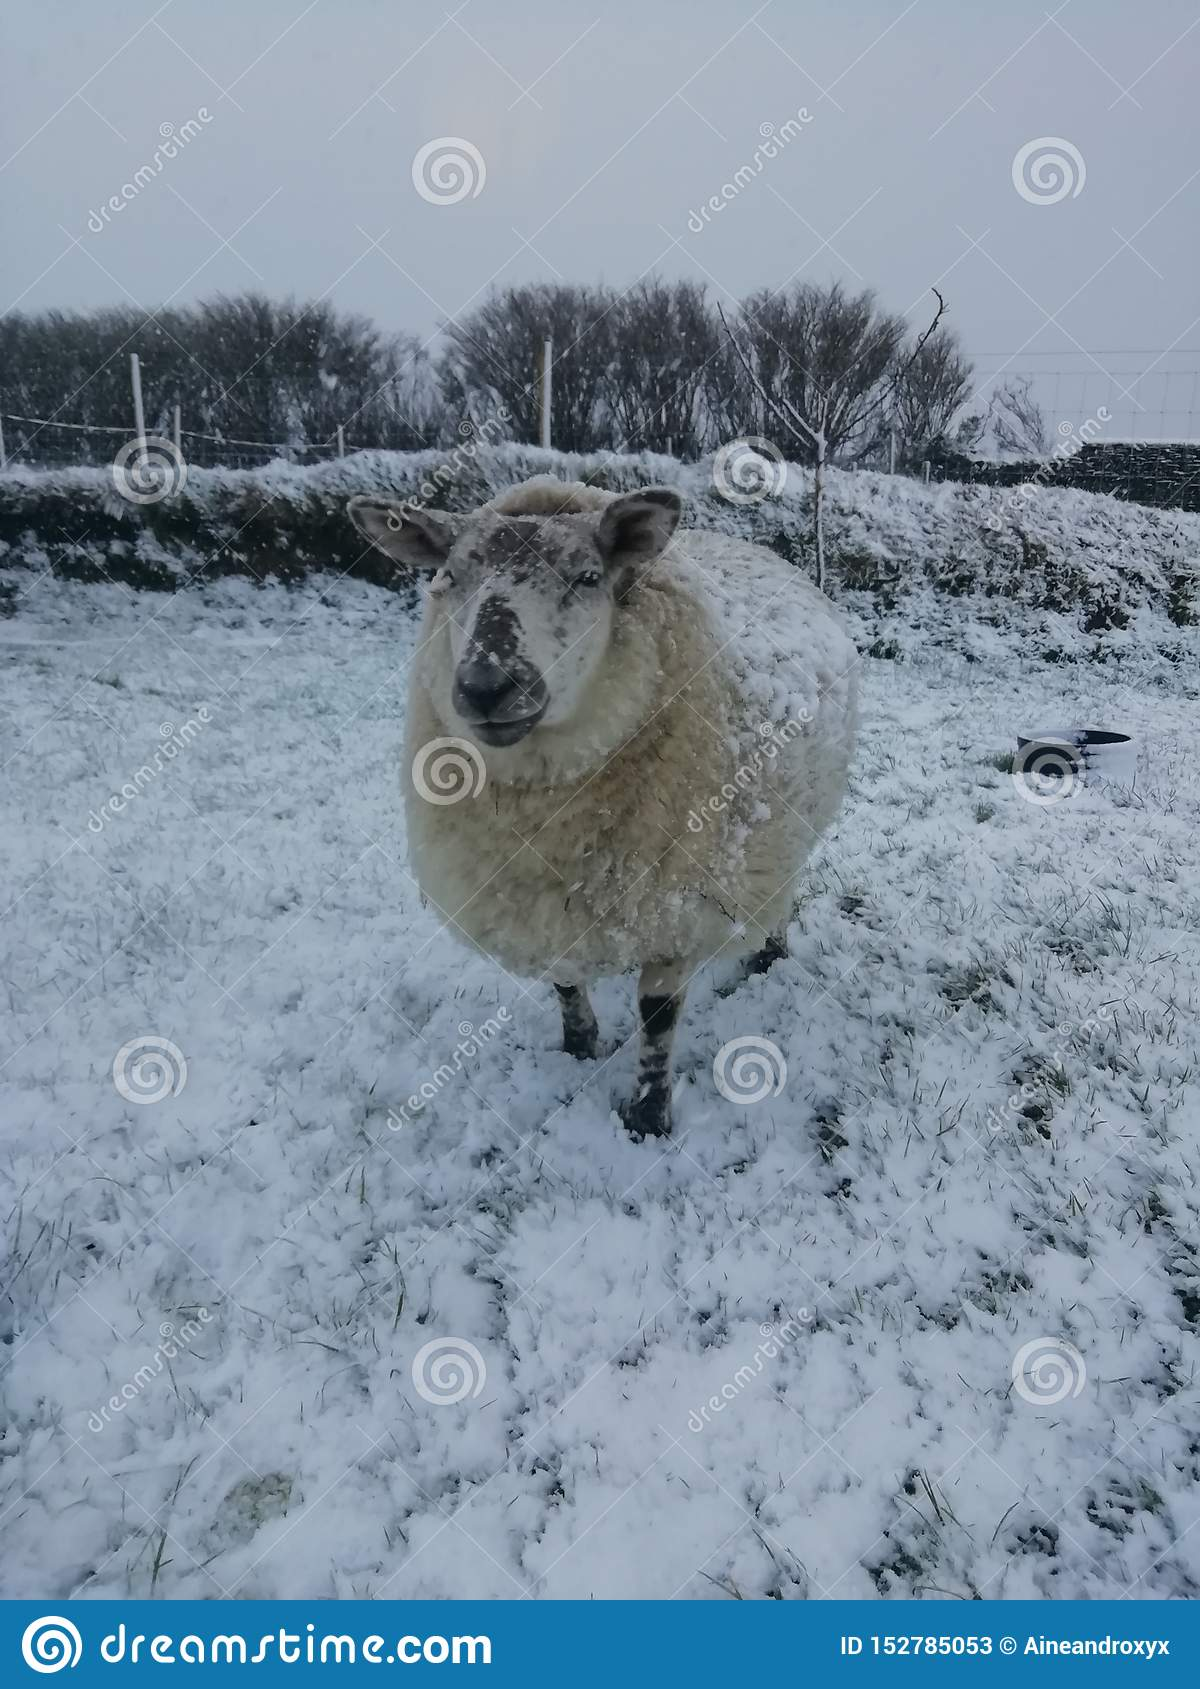 Miley in the snow again